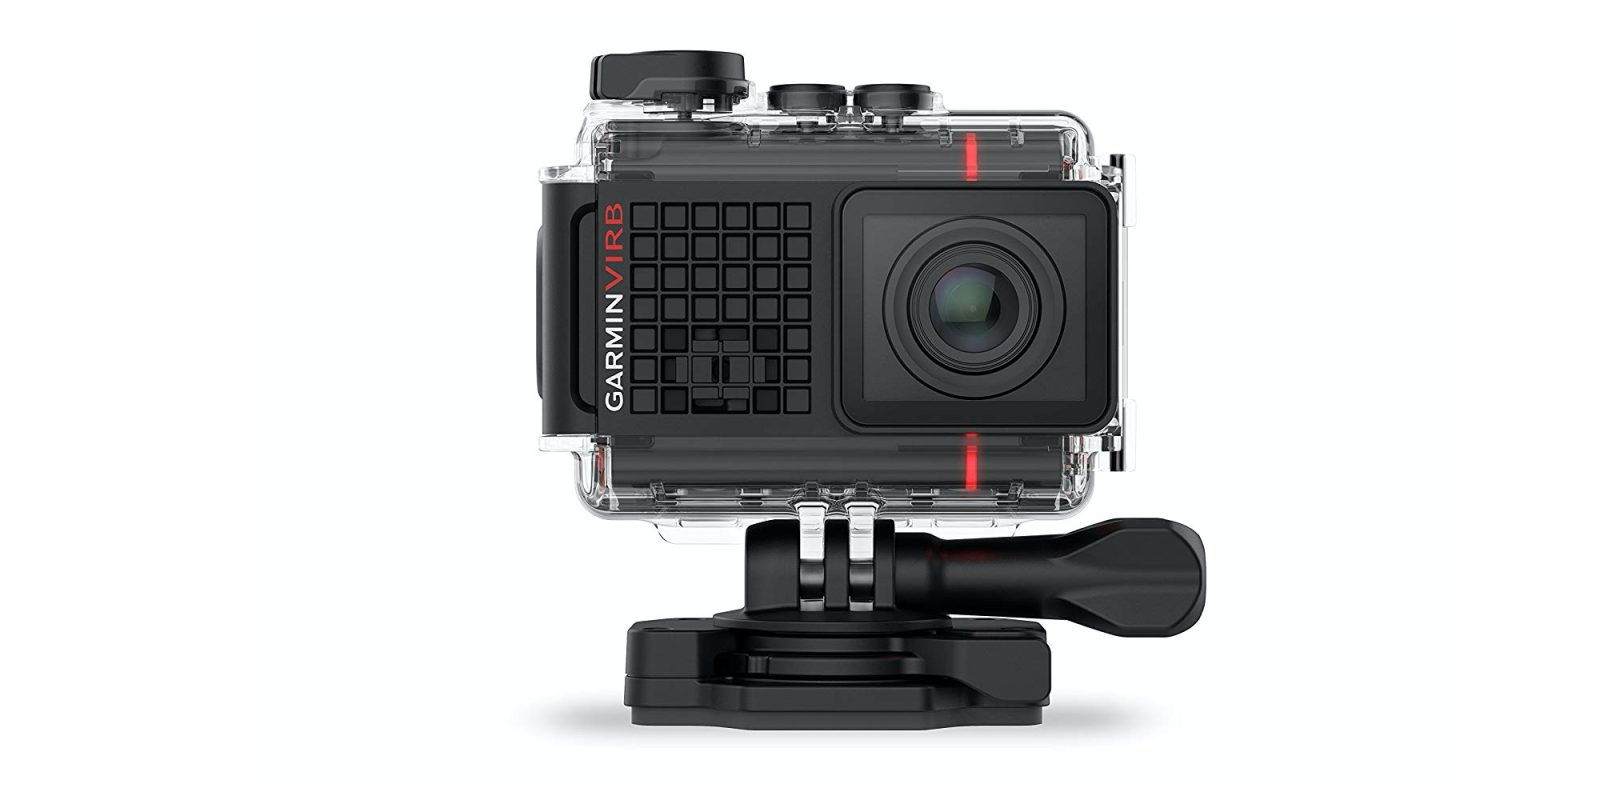 Garmin's VIRB Ultra 30 4K action camera packs stabilization: $260 (Reg. $310+)